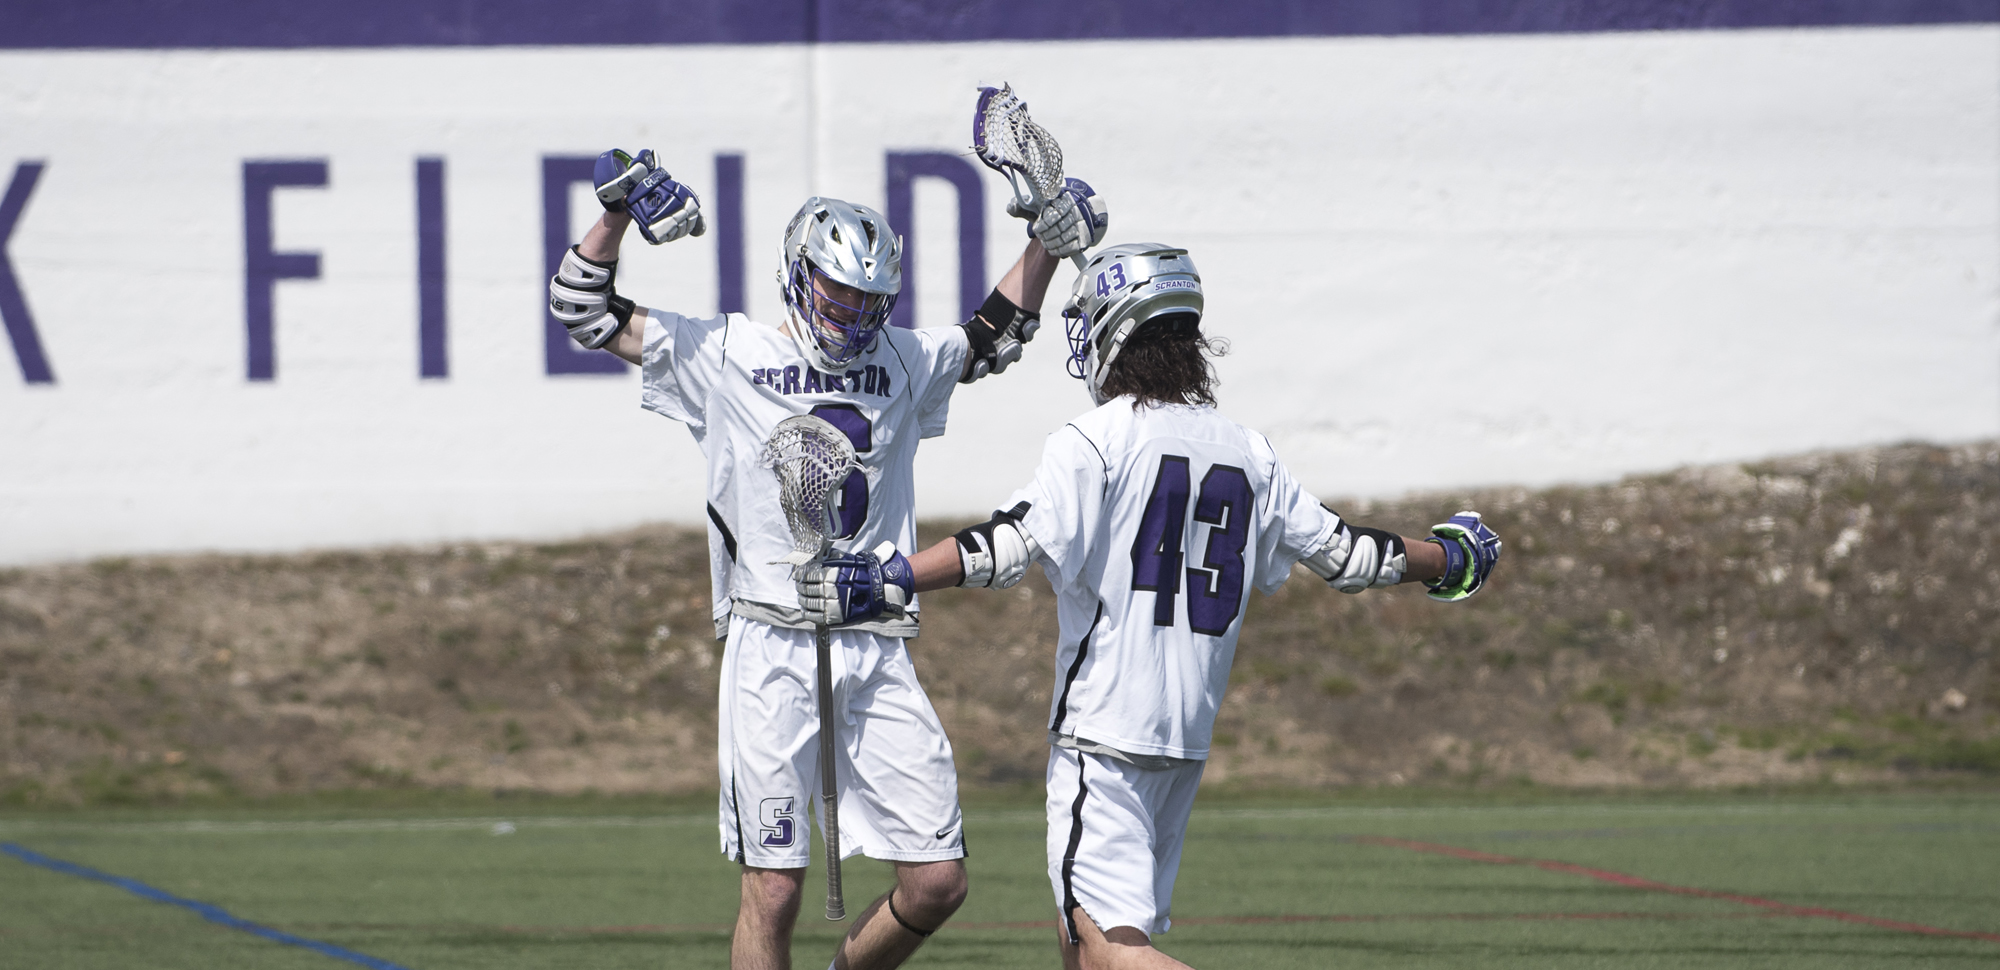 The University of Scranton men's lacrosse team was picked second in the 2019 Landmark Conference preseason coaches' poll.